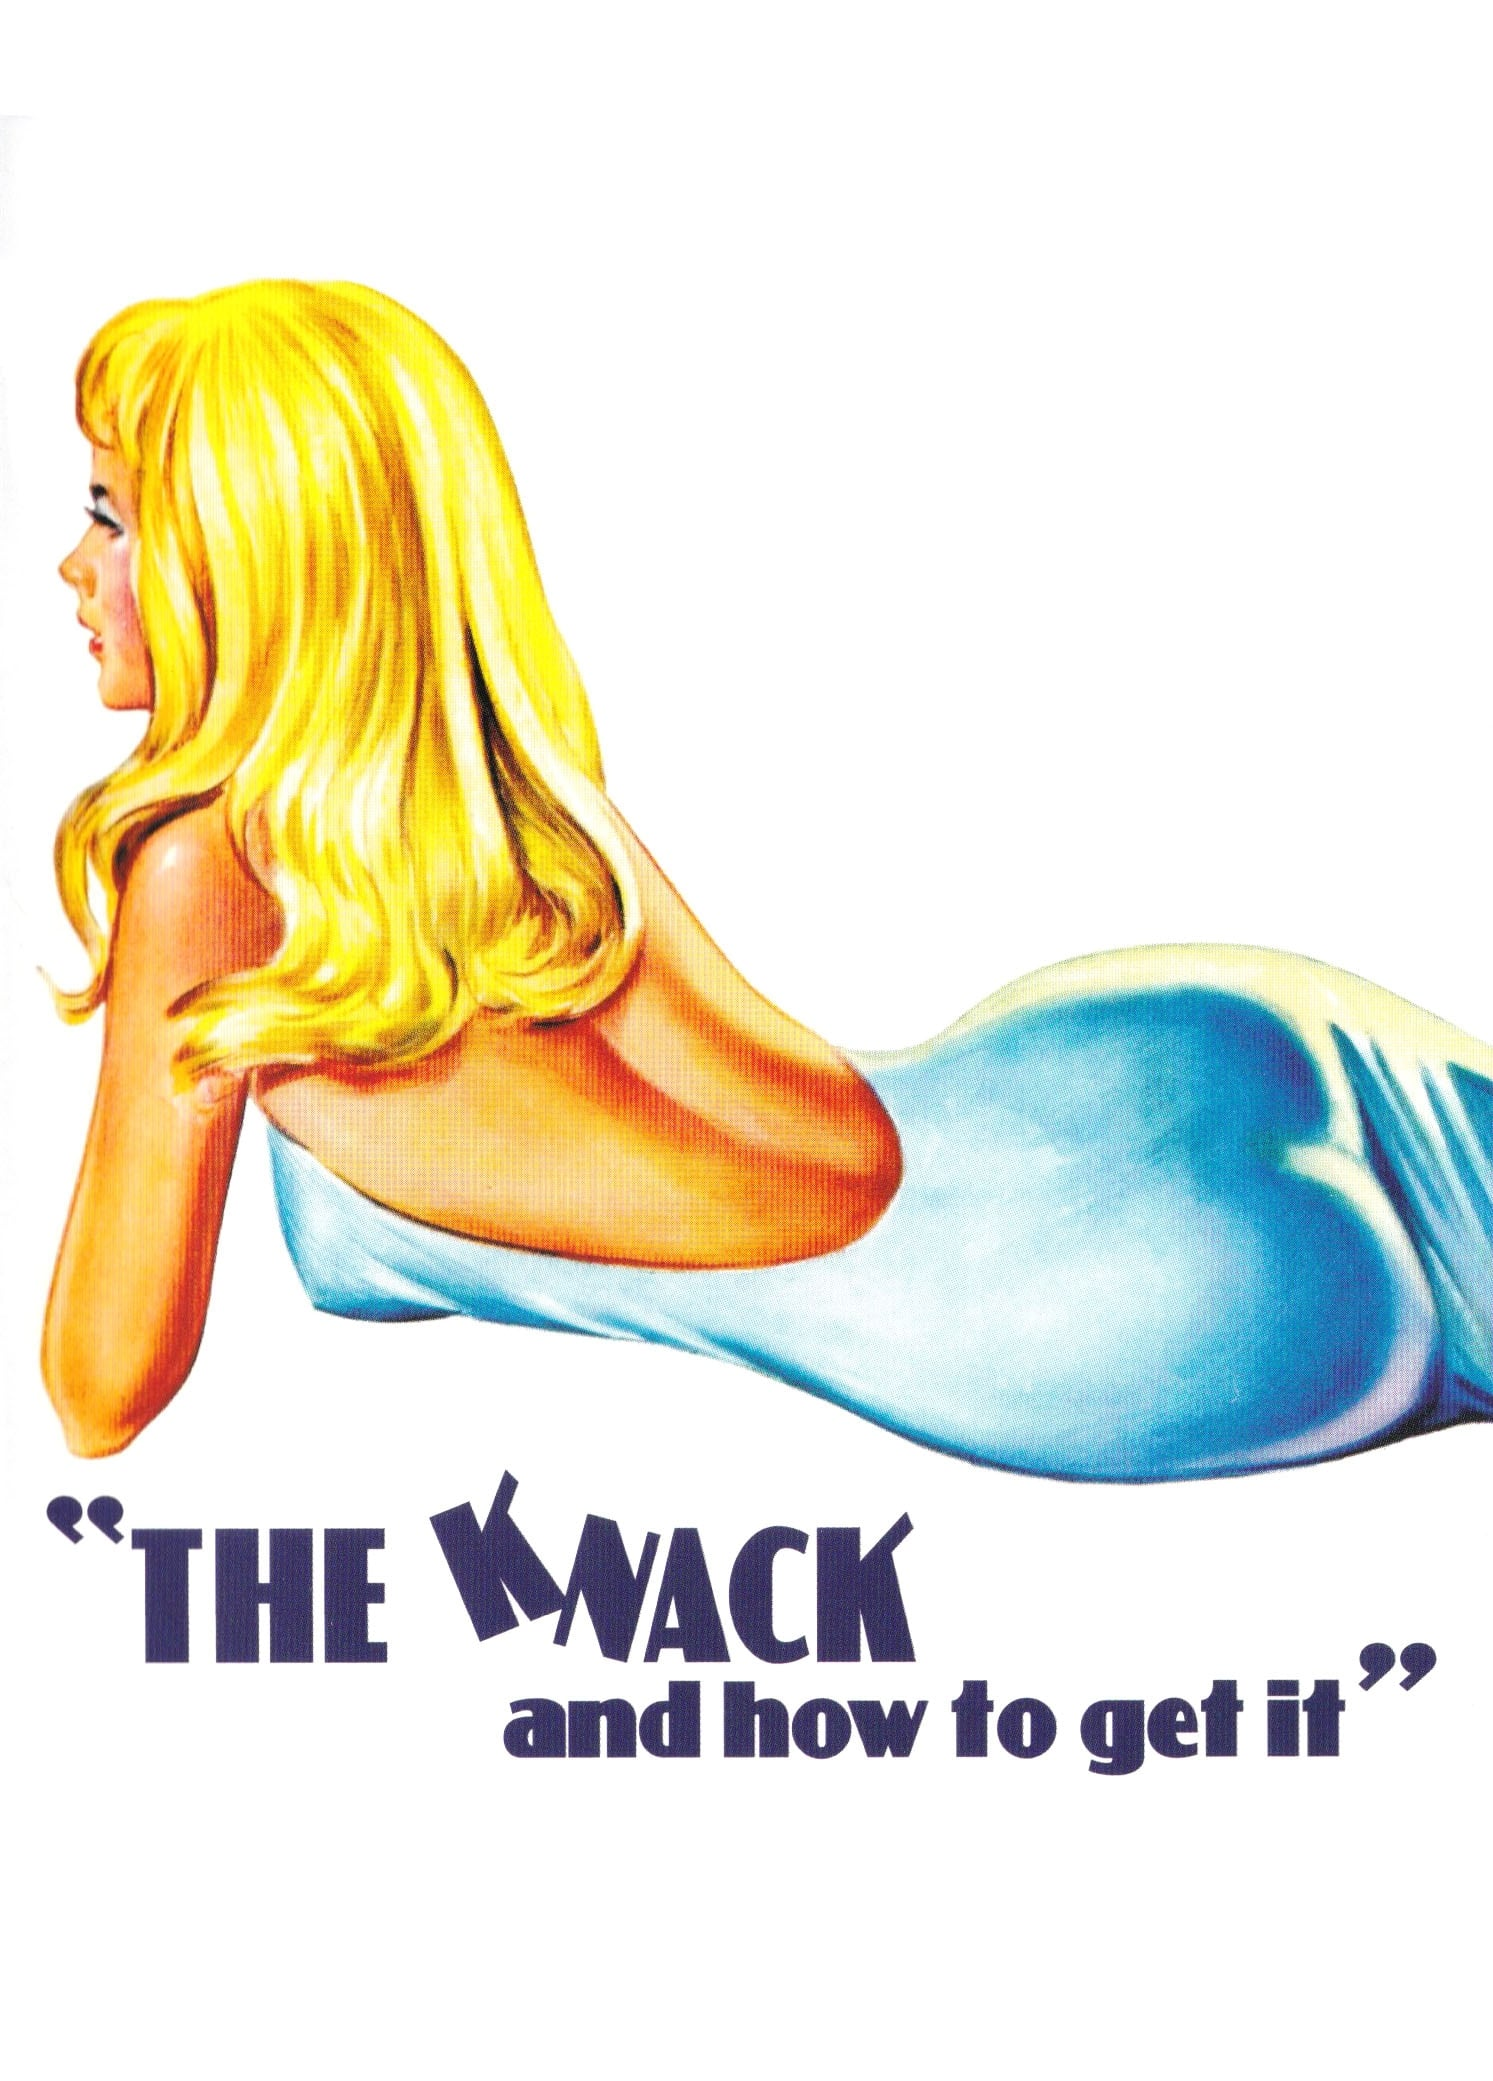 The Knack... and How to Get It (1965)